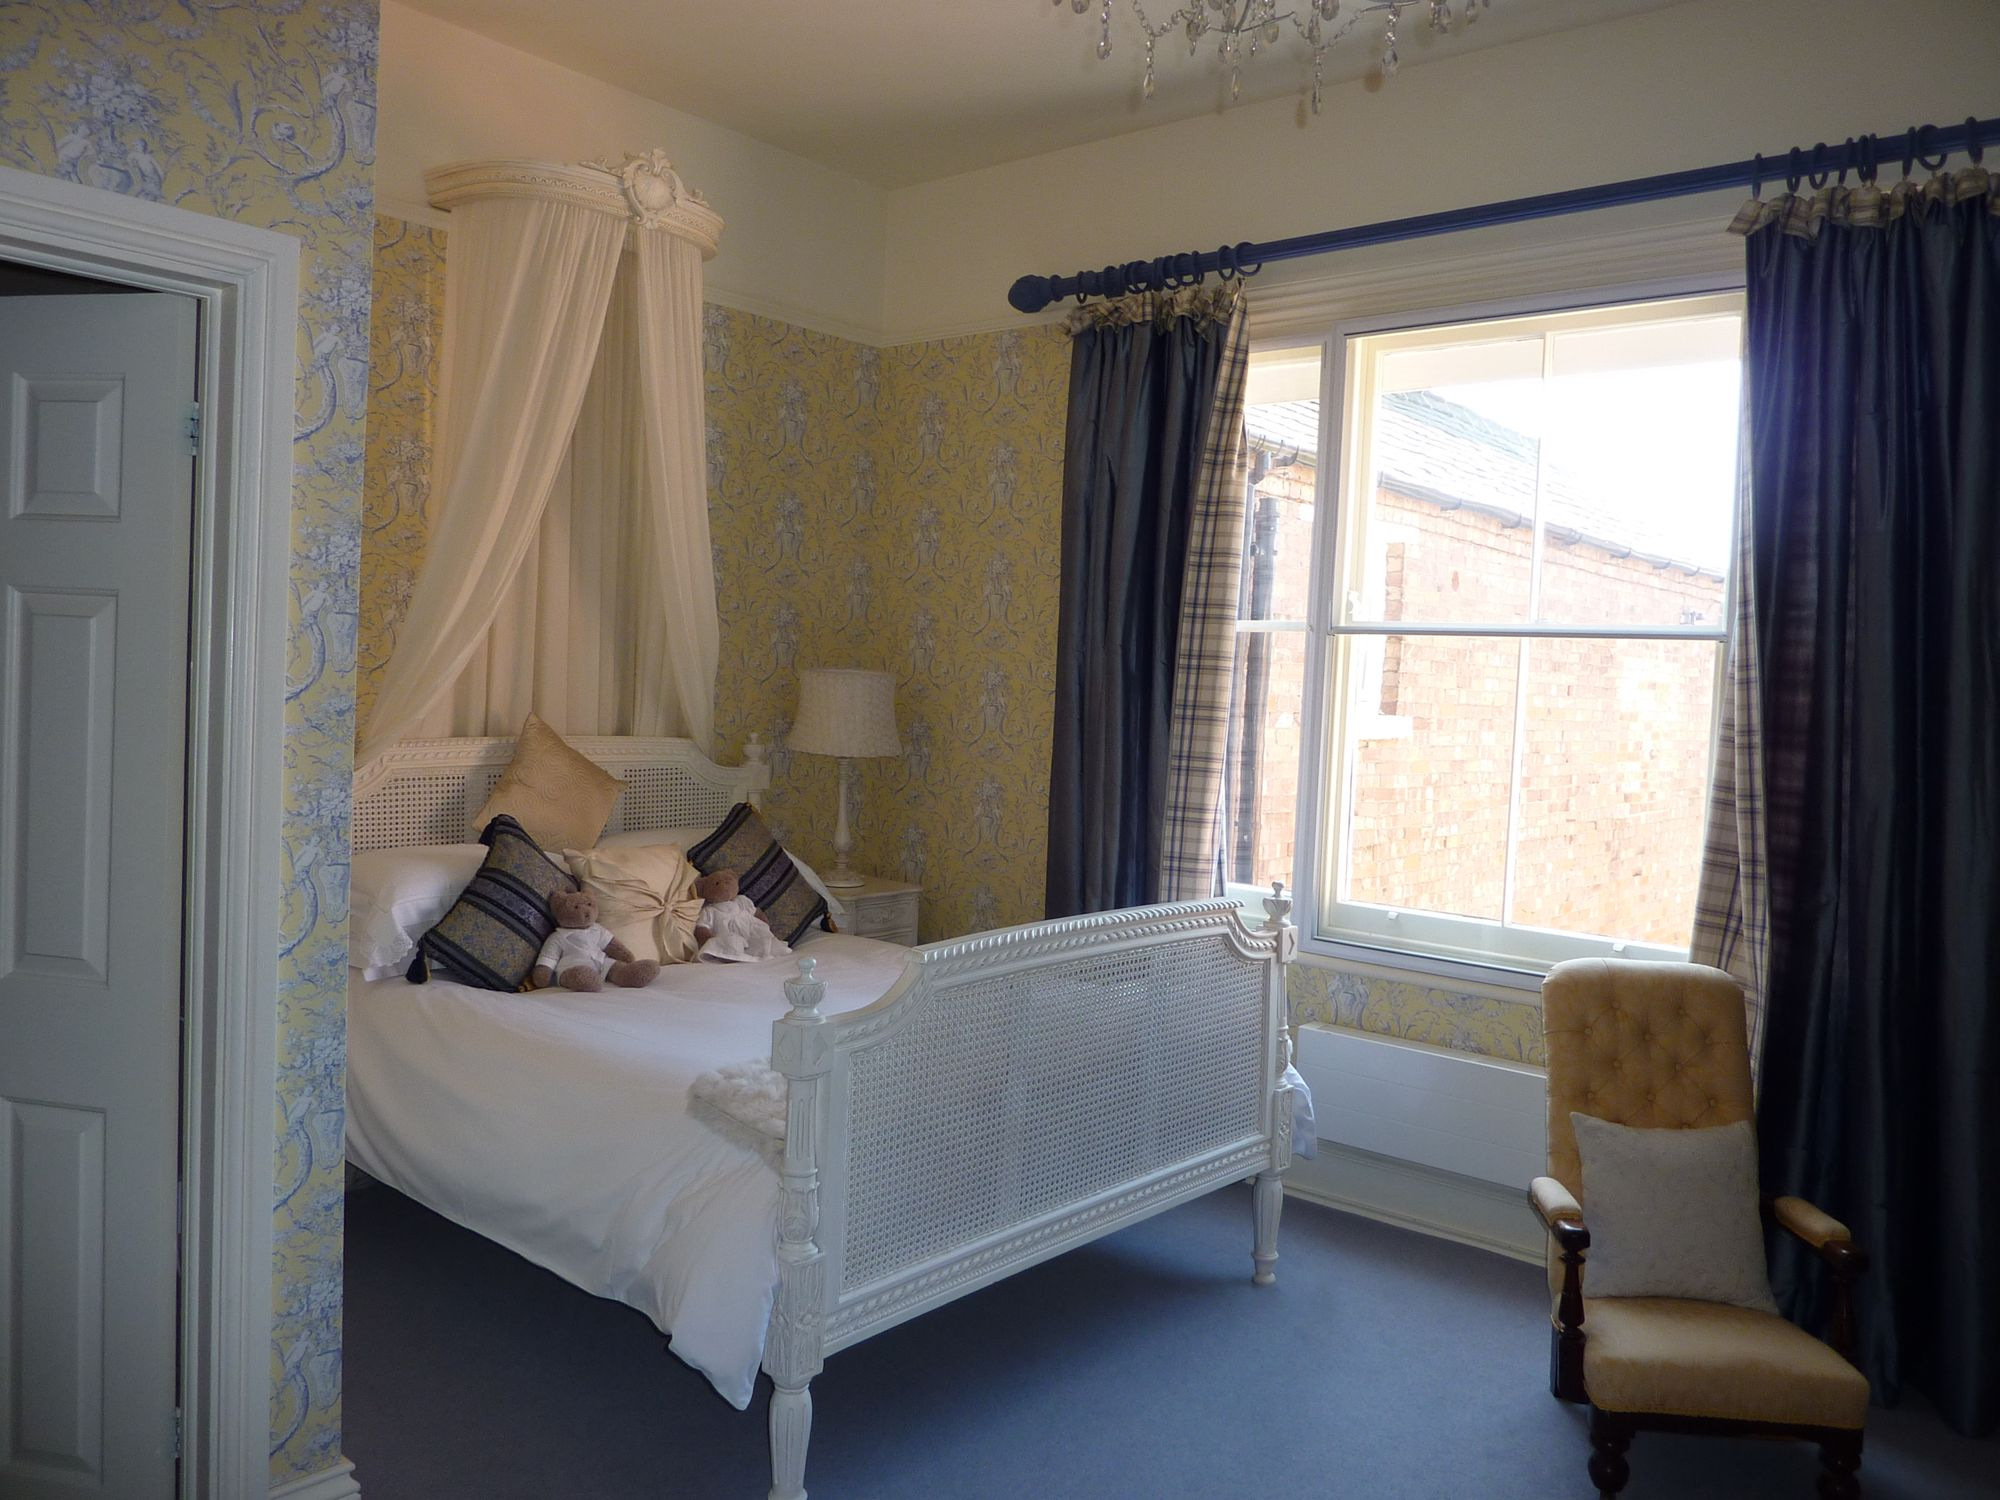 B&Bs in Stratford upon Avon holidays at Cool Places